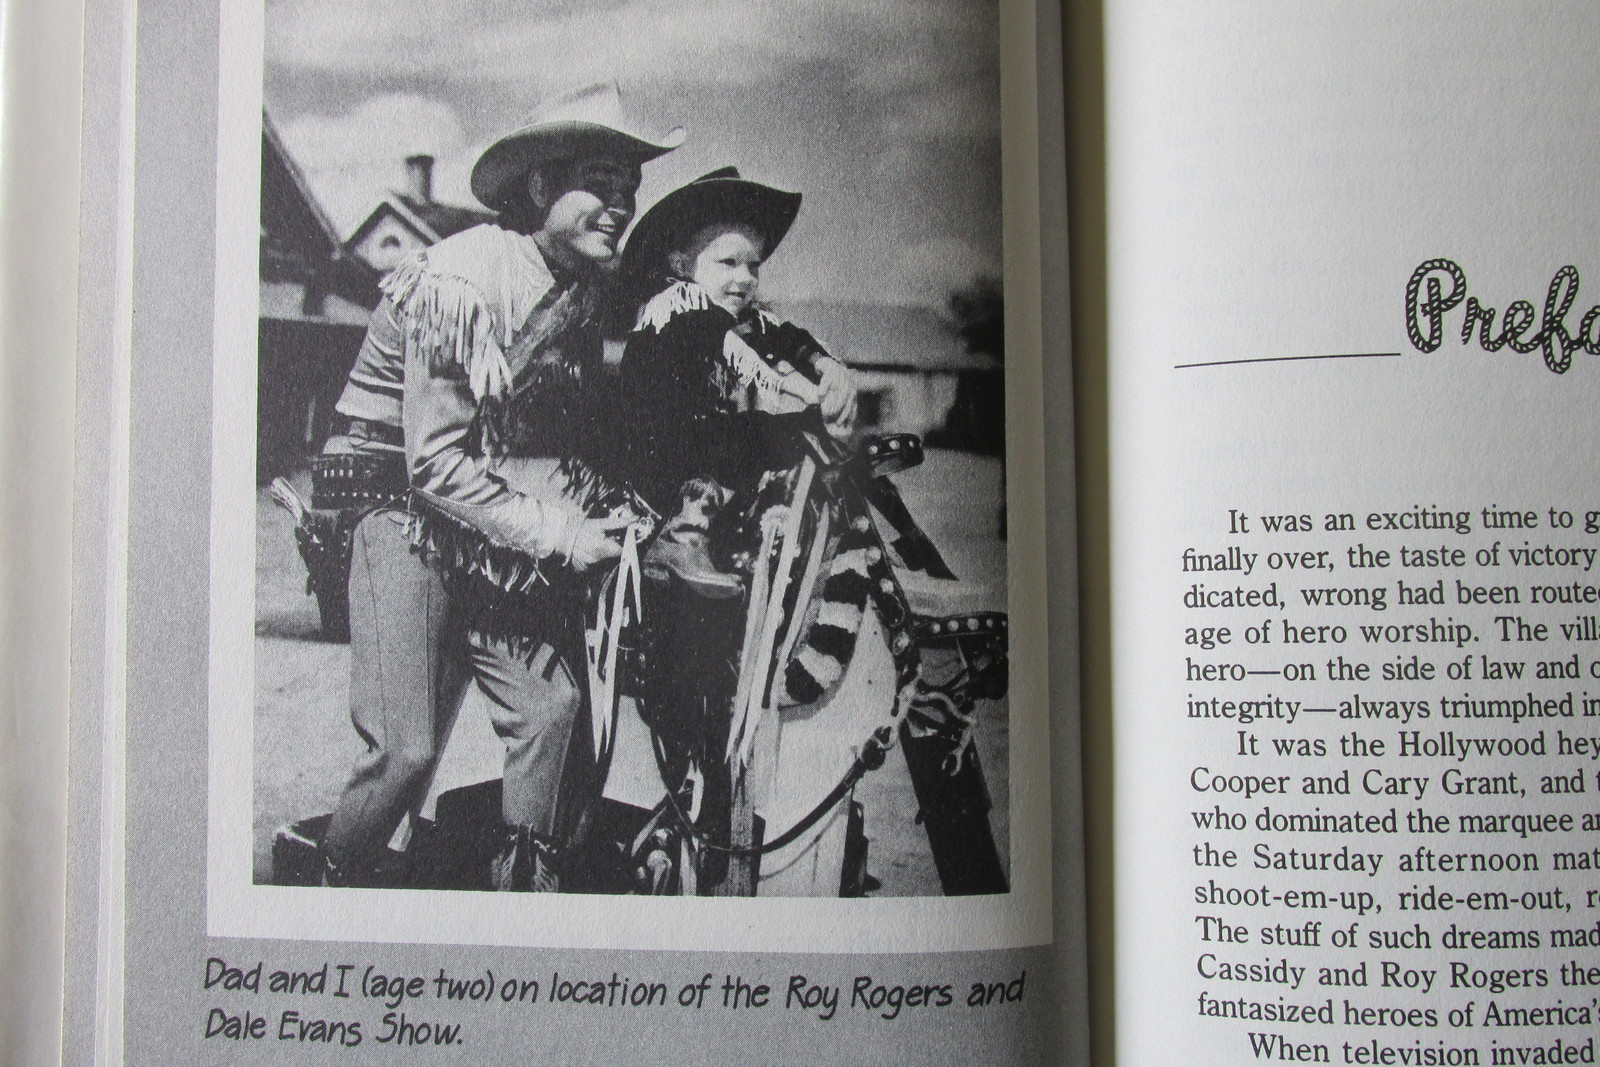 Growing Up With Roy & Dale by Roy Rogers, Jr., - Also 1959 Newspaper Article image 4